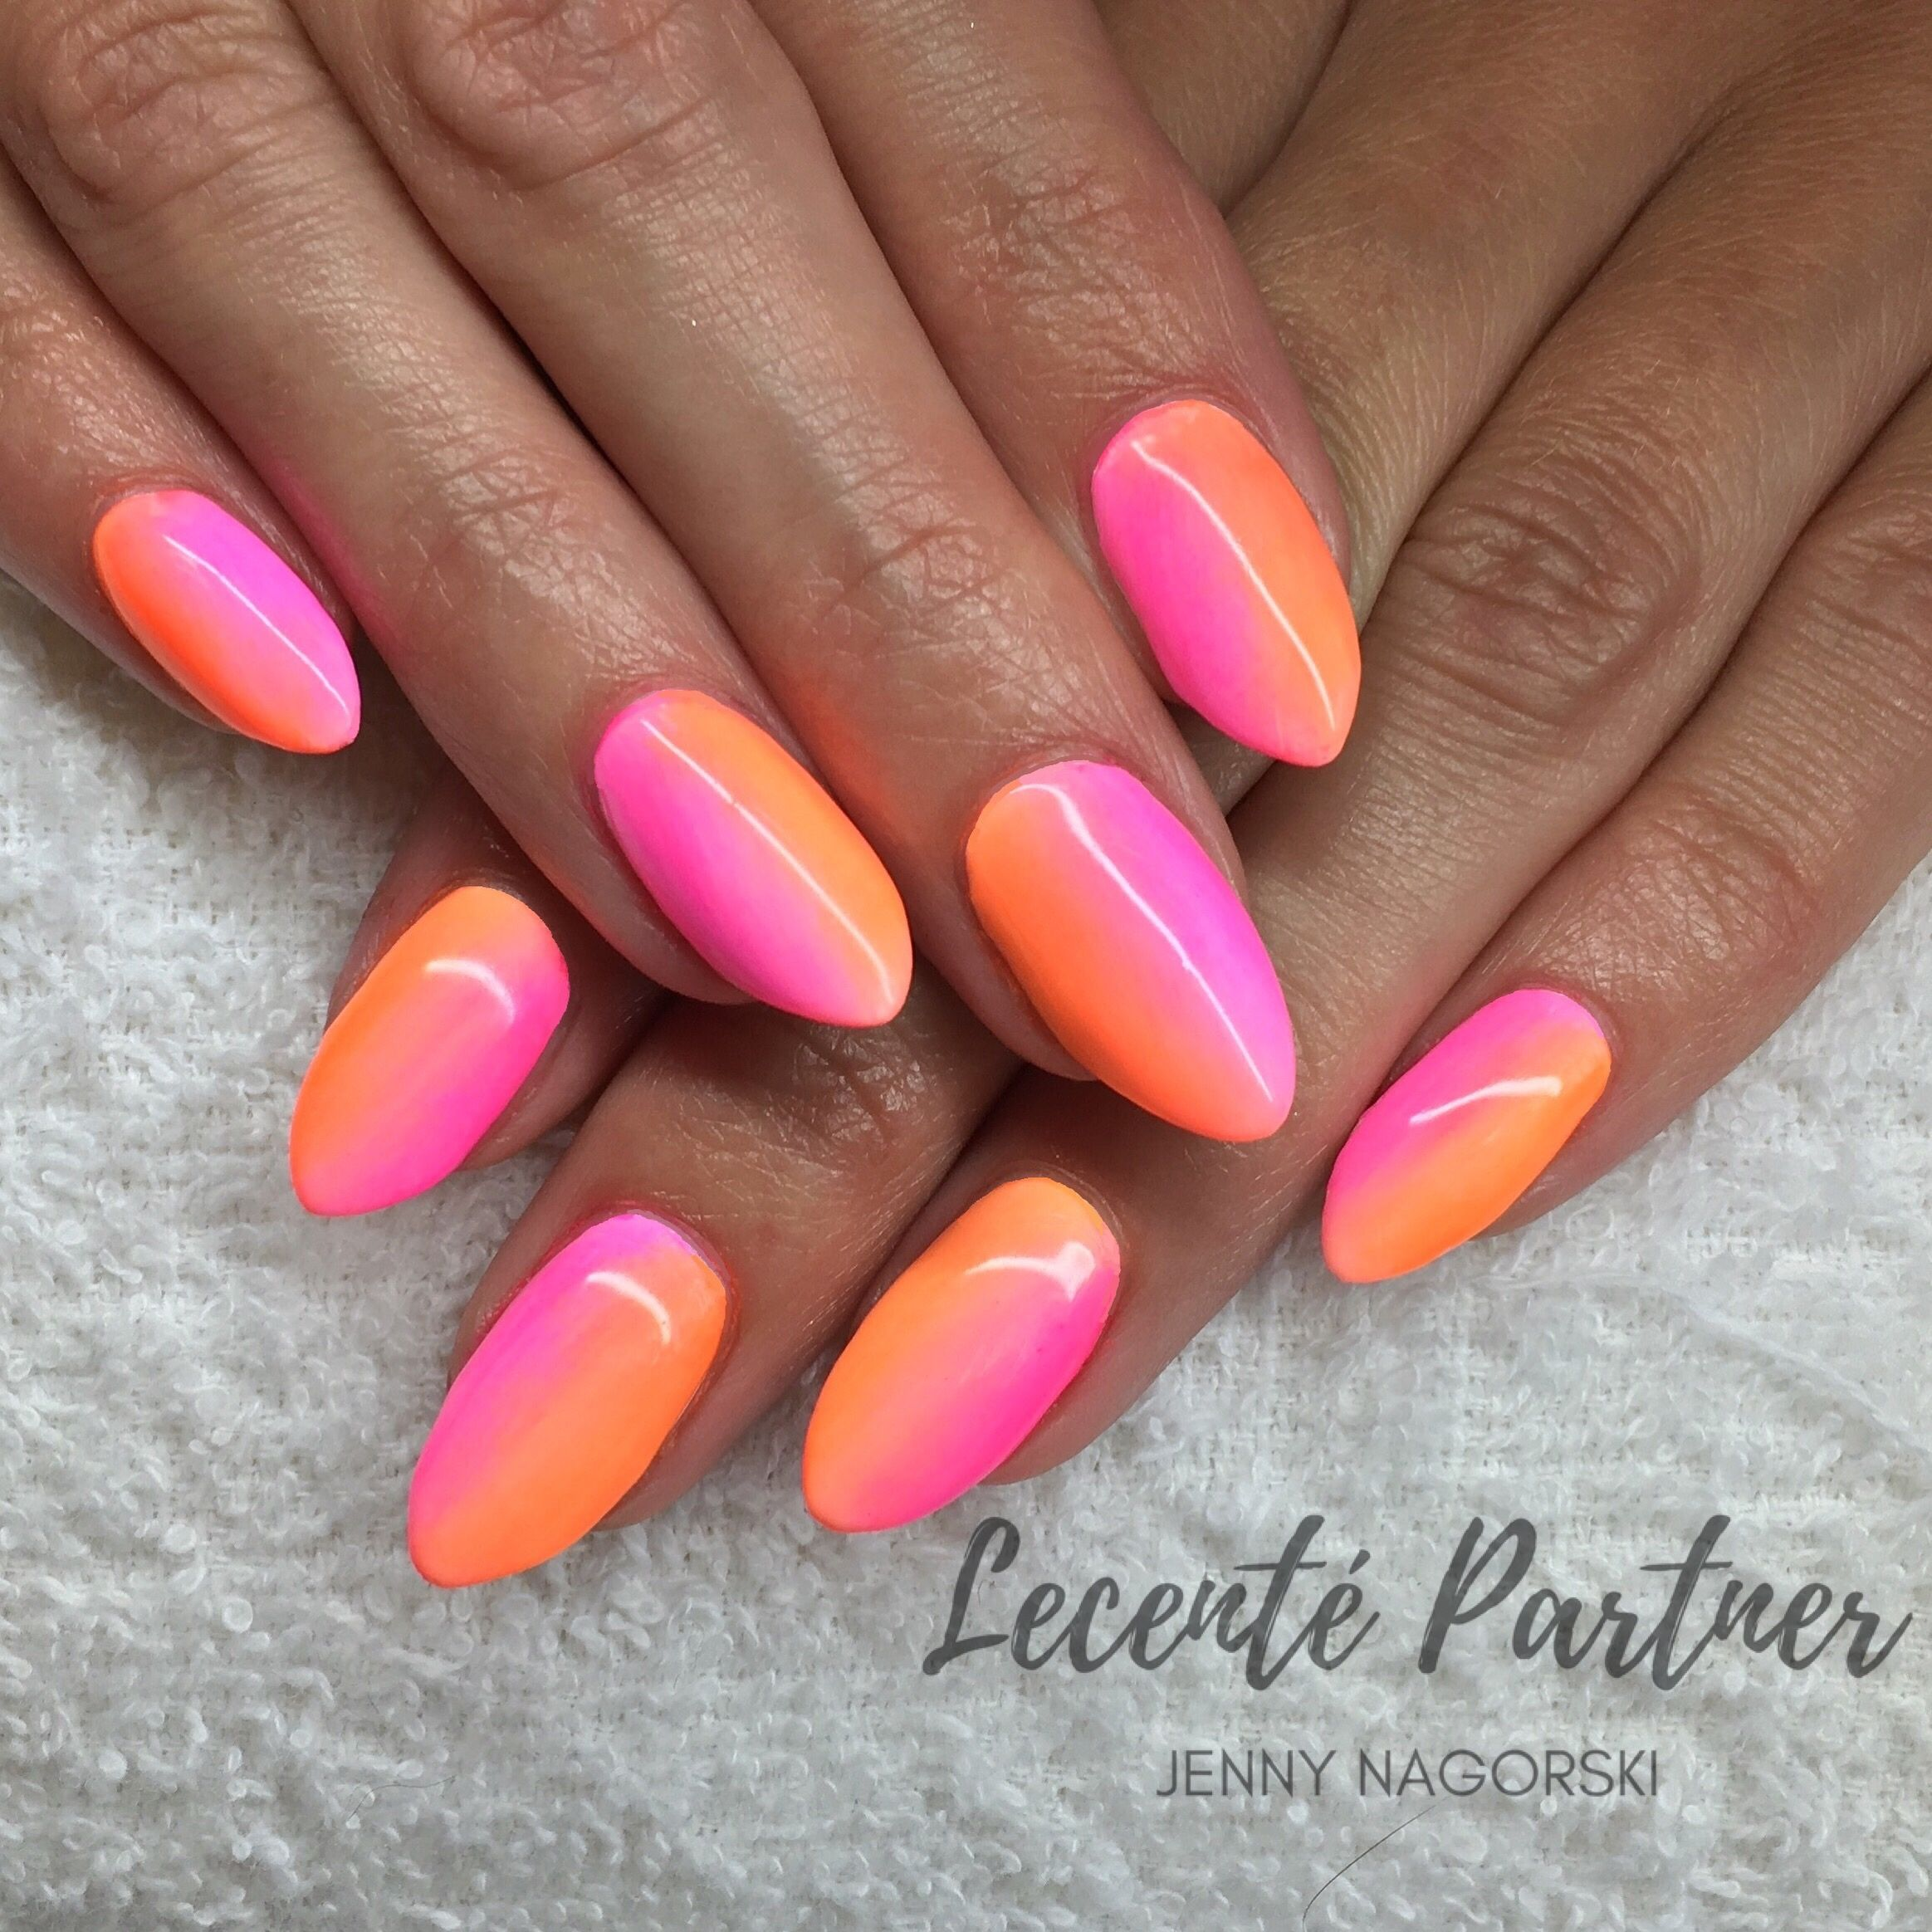 Neon Ombre Nails Using Lecente Neon Powders And Cnd Shellac With